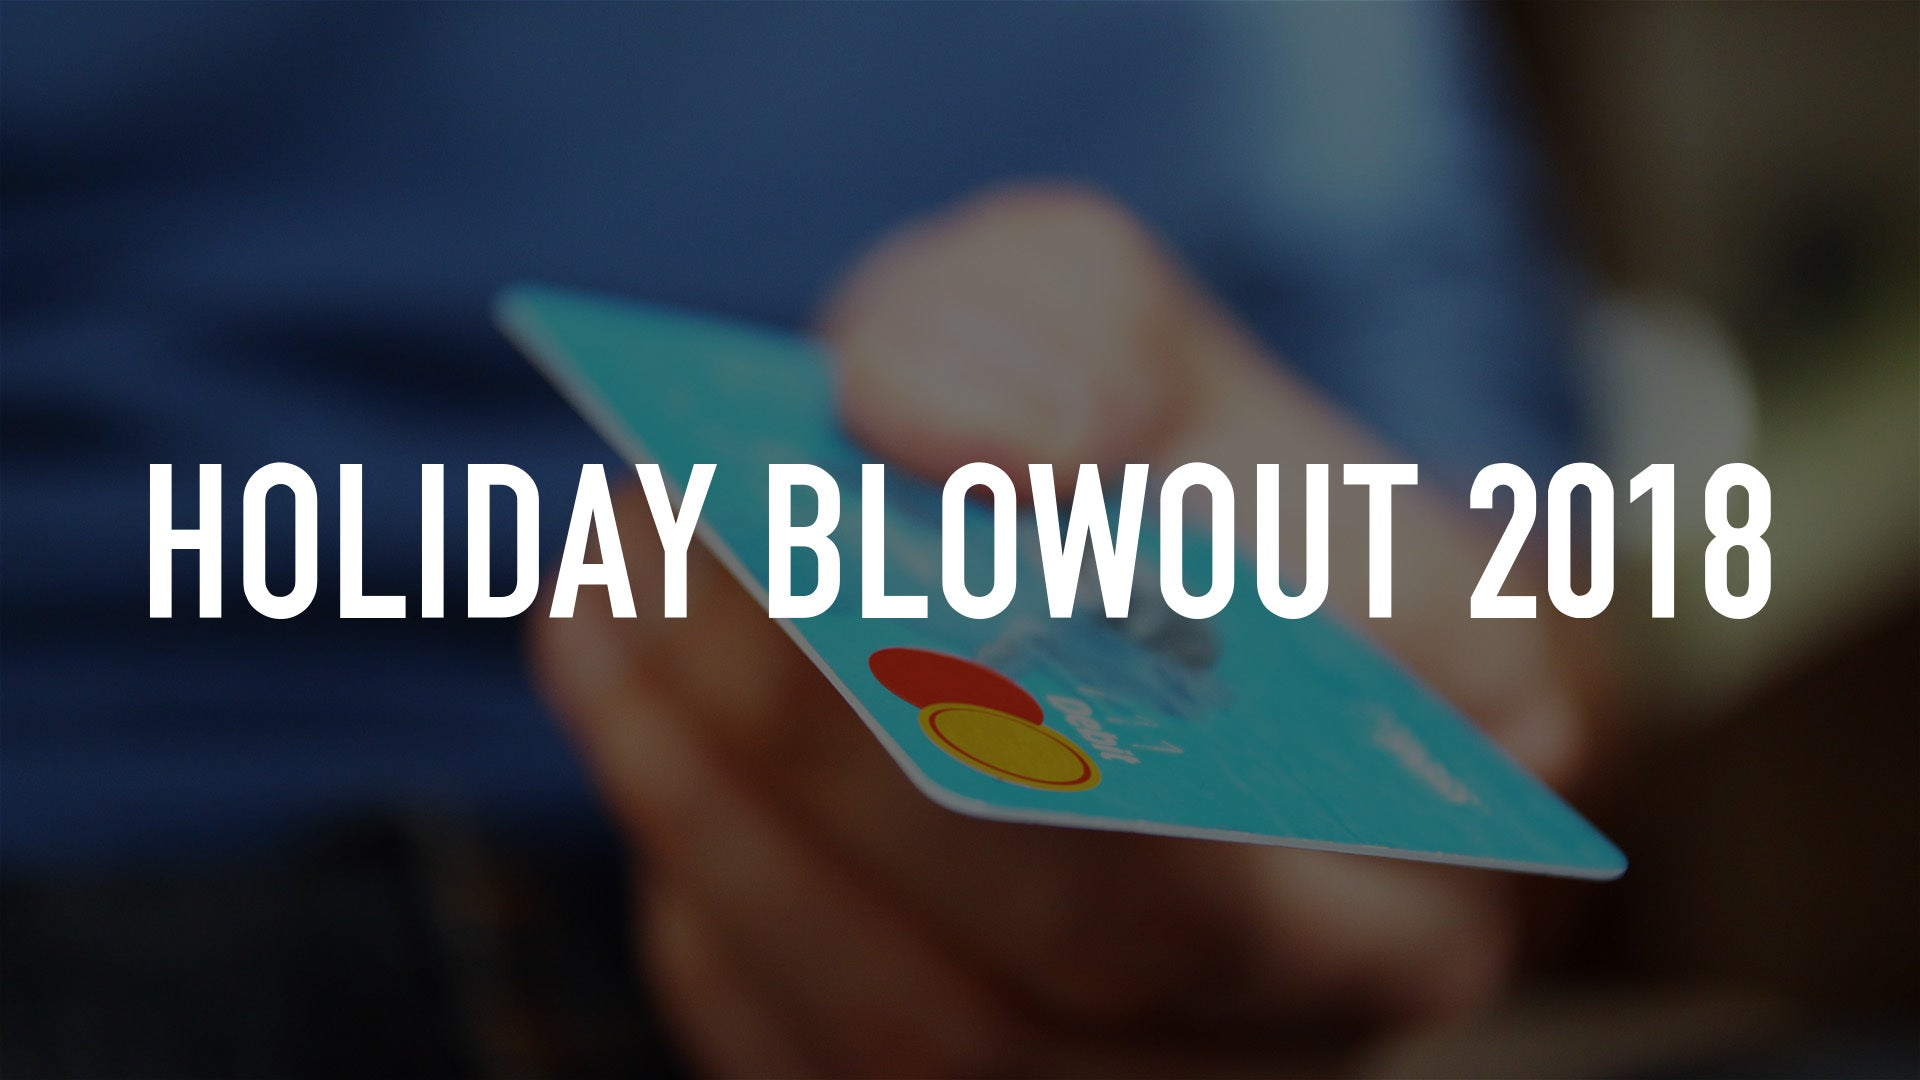 Holiday Blowout 2018